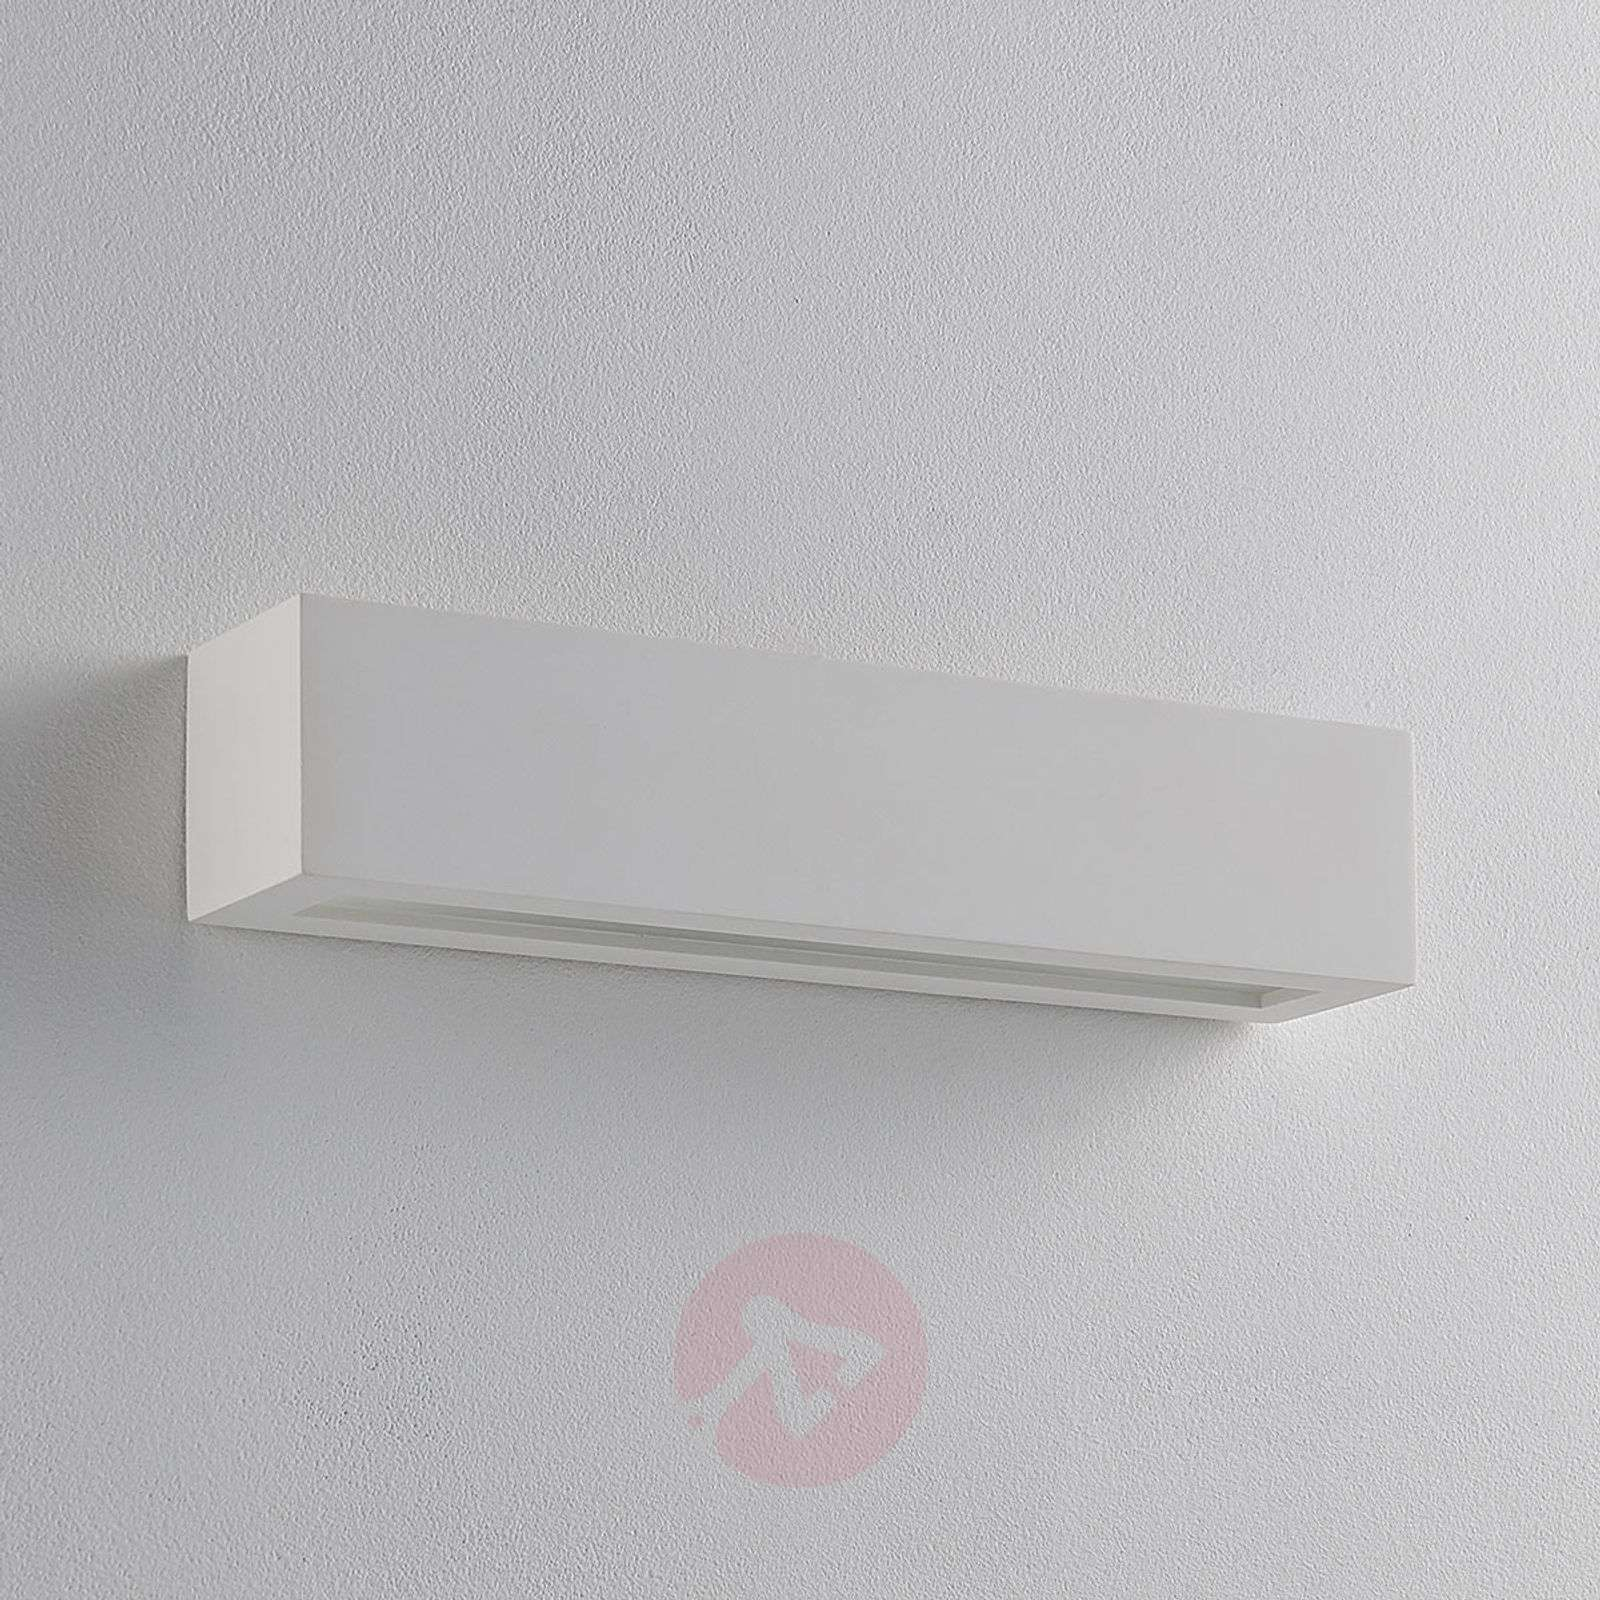 Plaster wall light Tjada with G9 LED bulbs-9621337-02